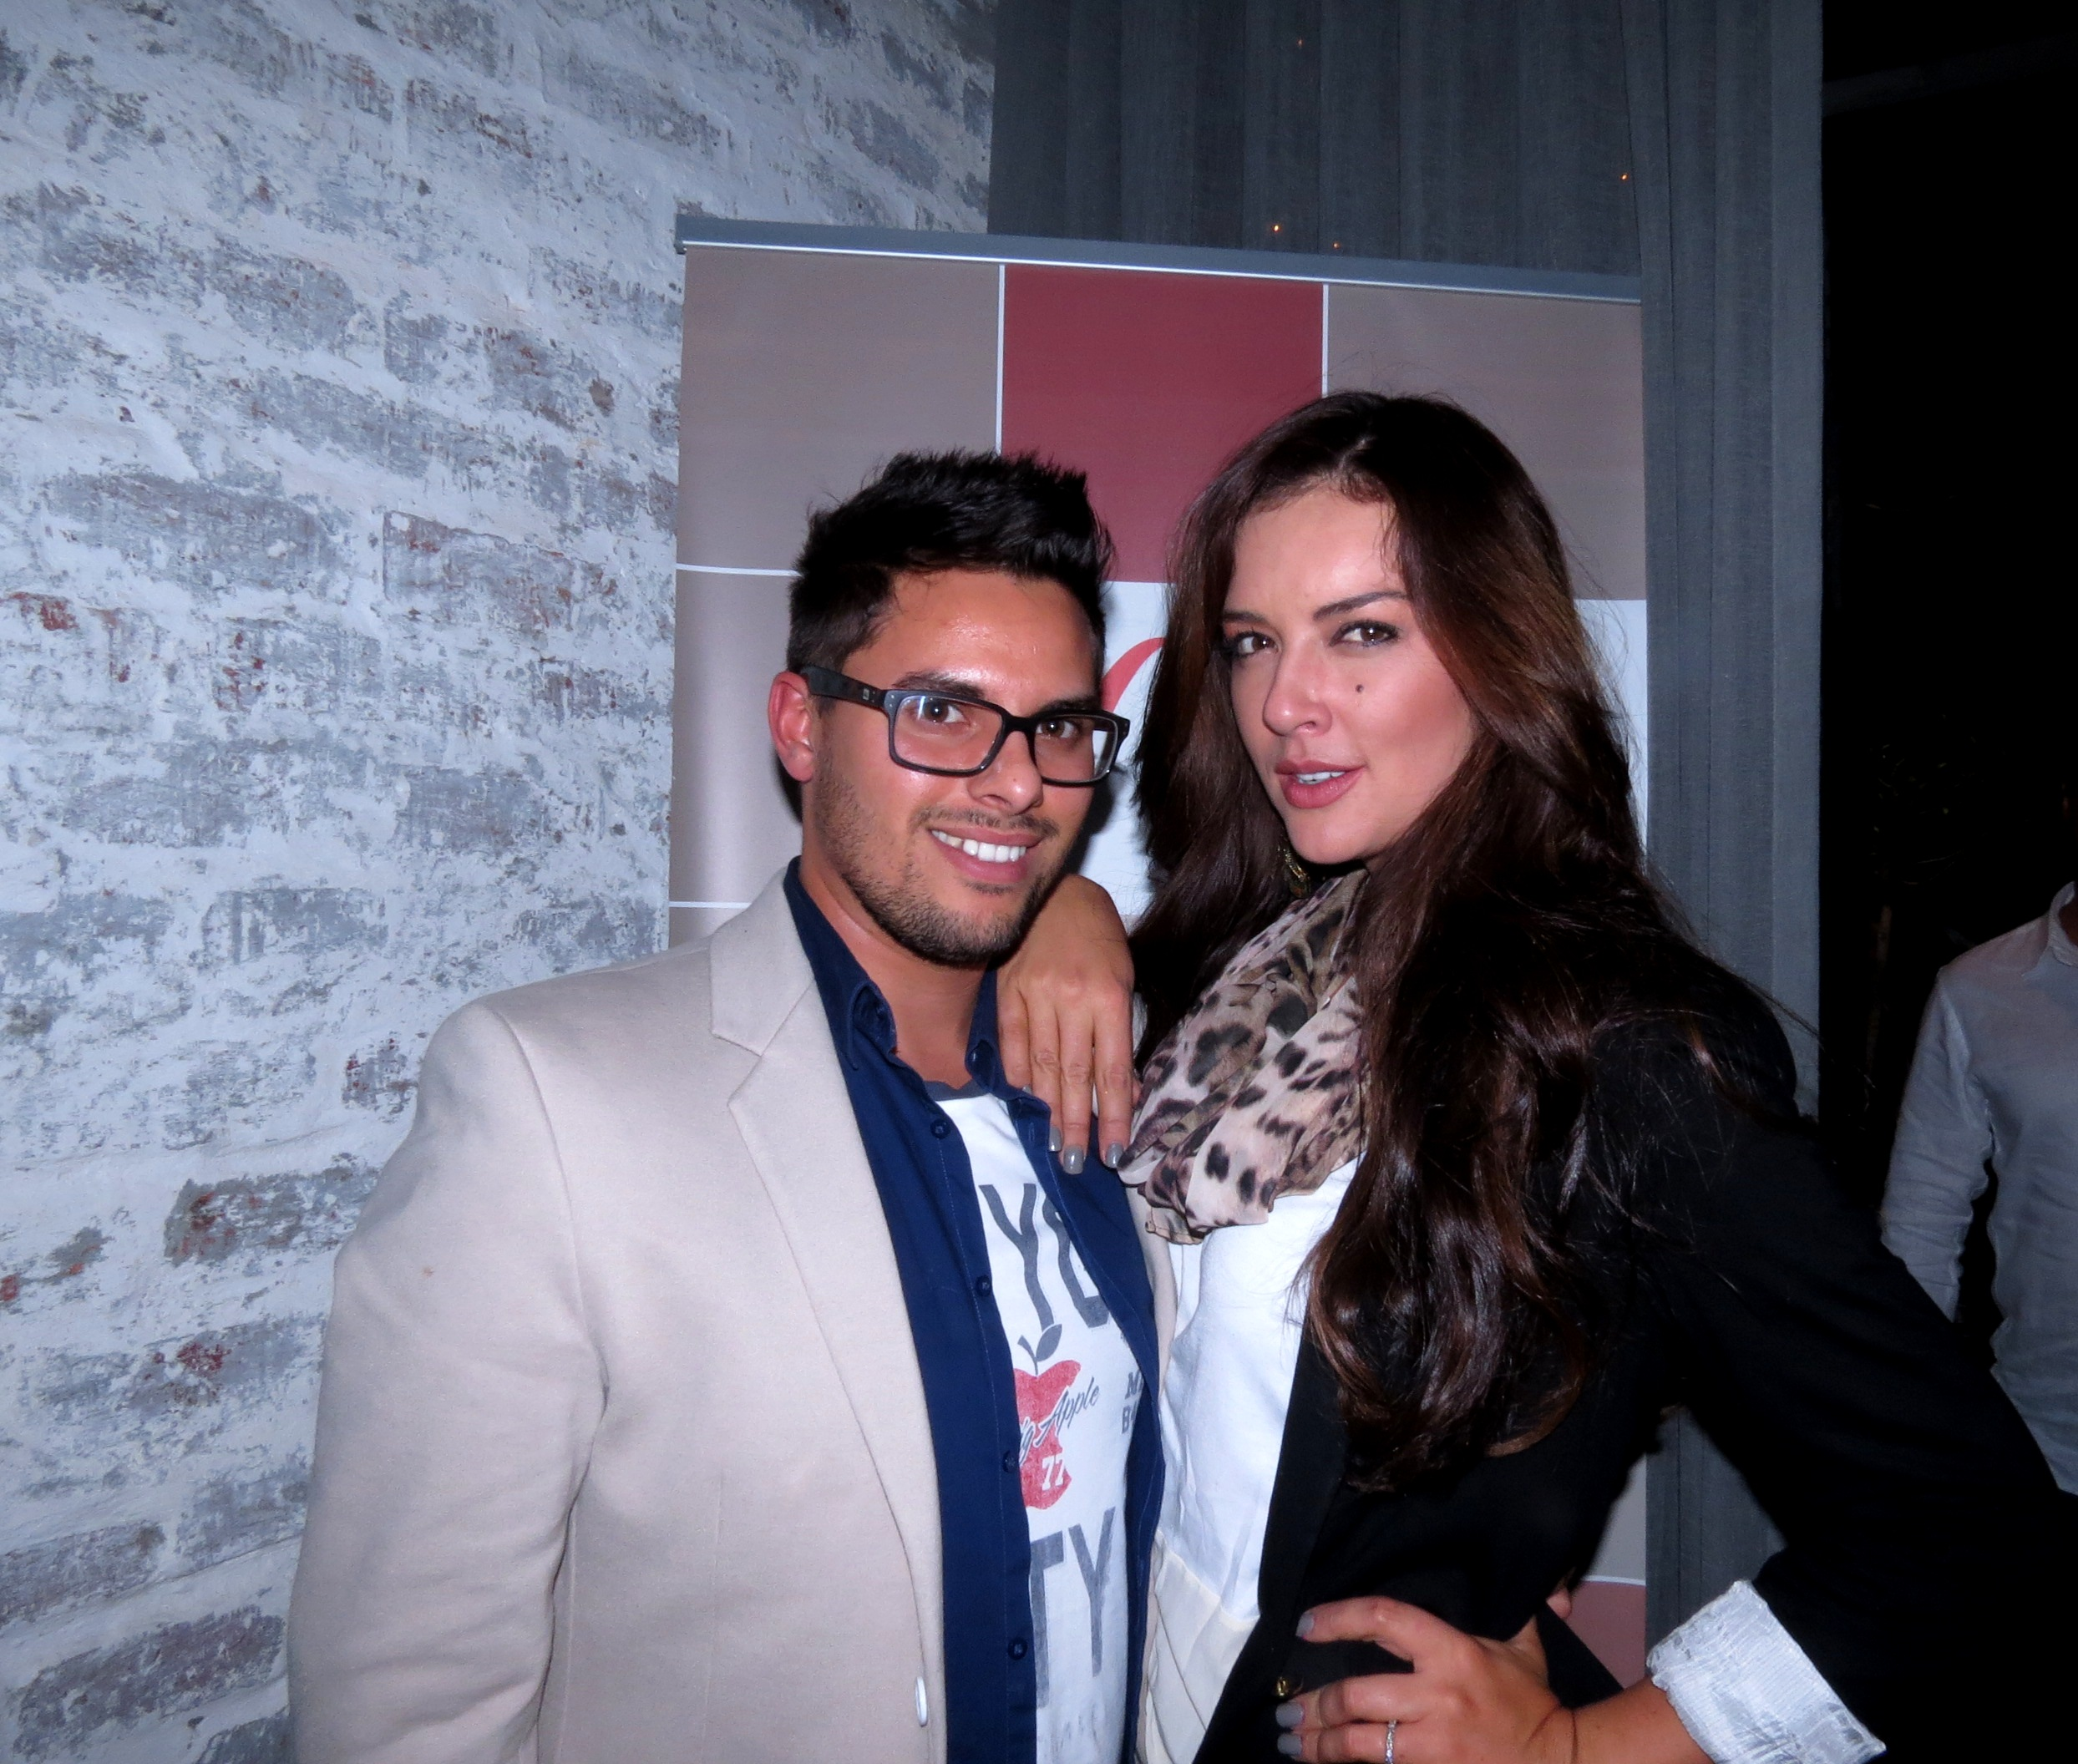 cindy nell at event with Elrico from LUXO